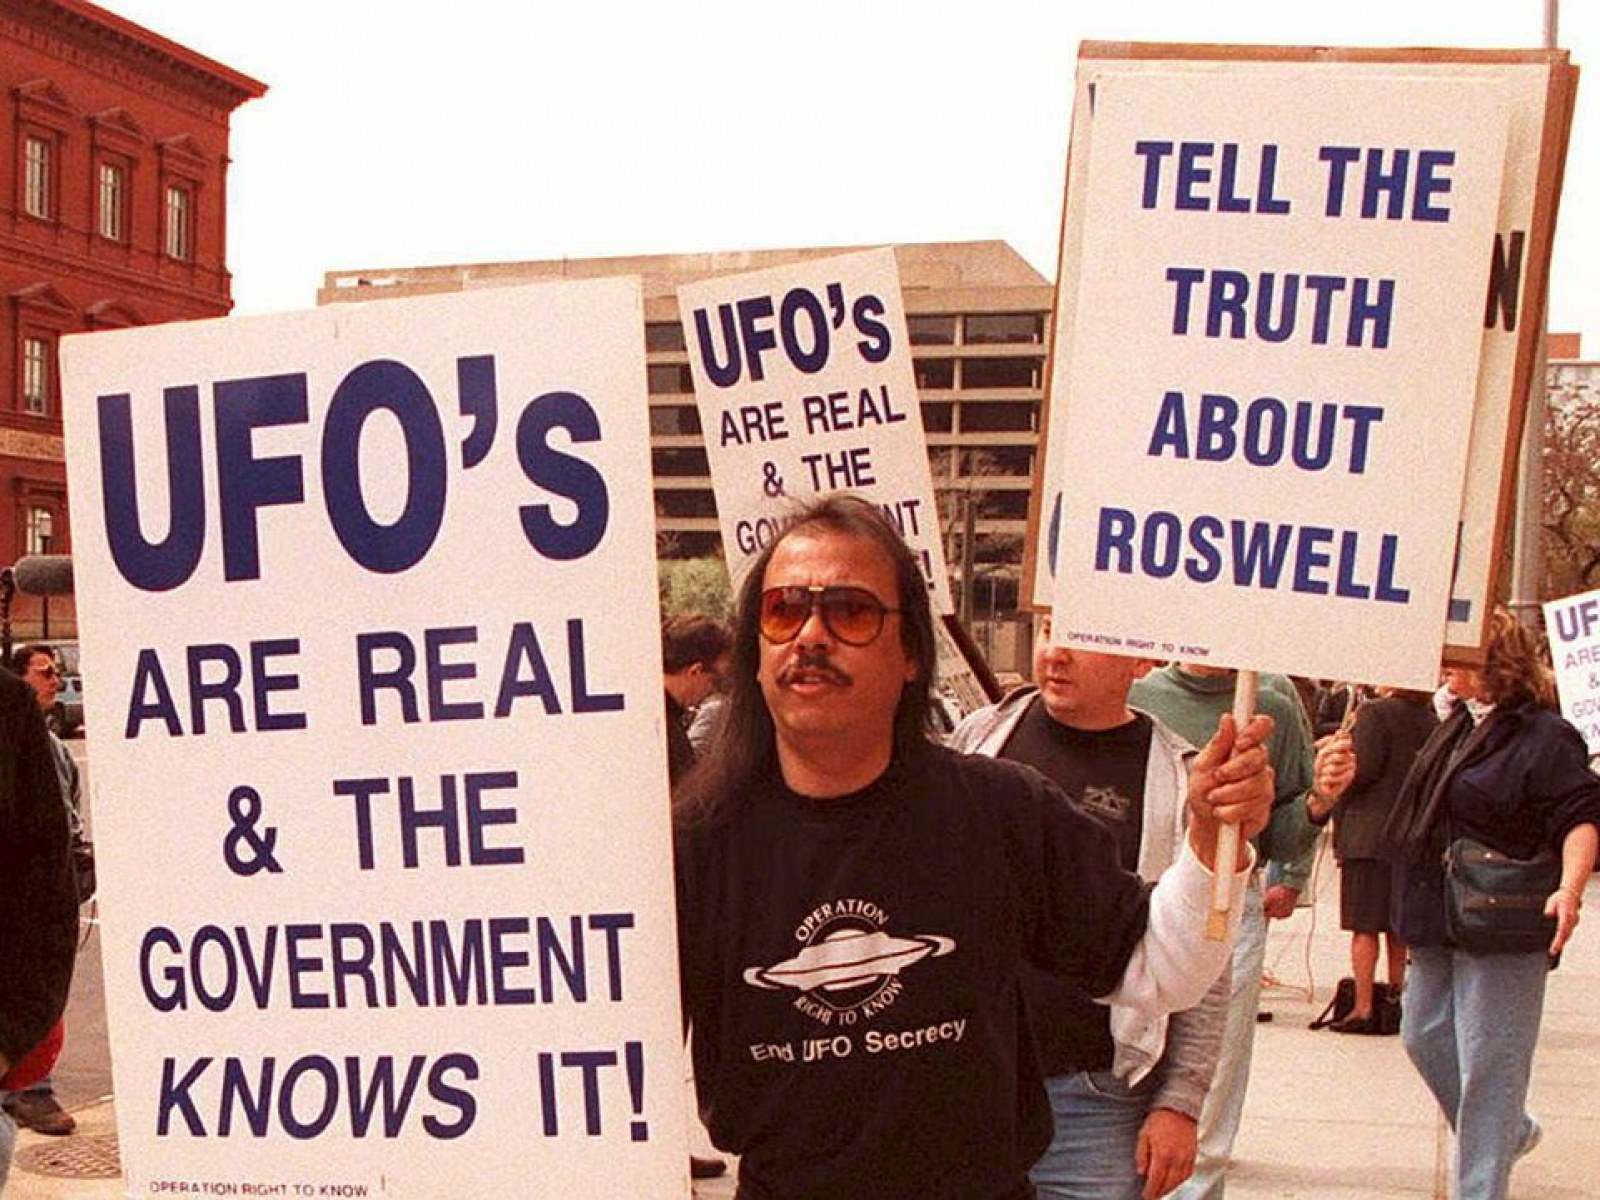 The Most Credible UFO Sightings and Encounters in Modern